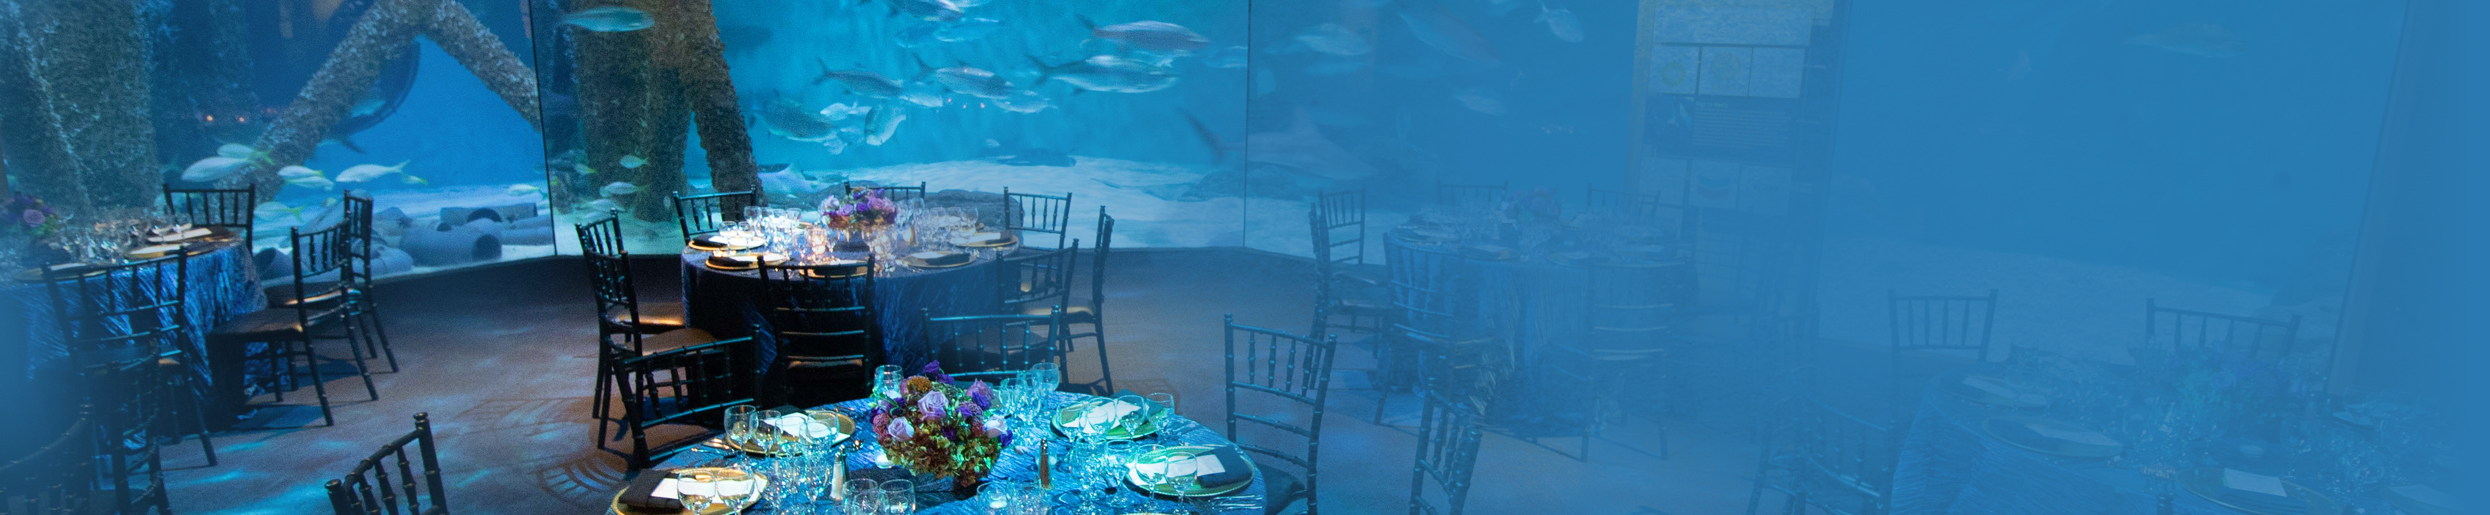 private-events-aquarium-2490